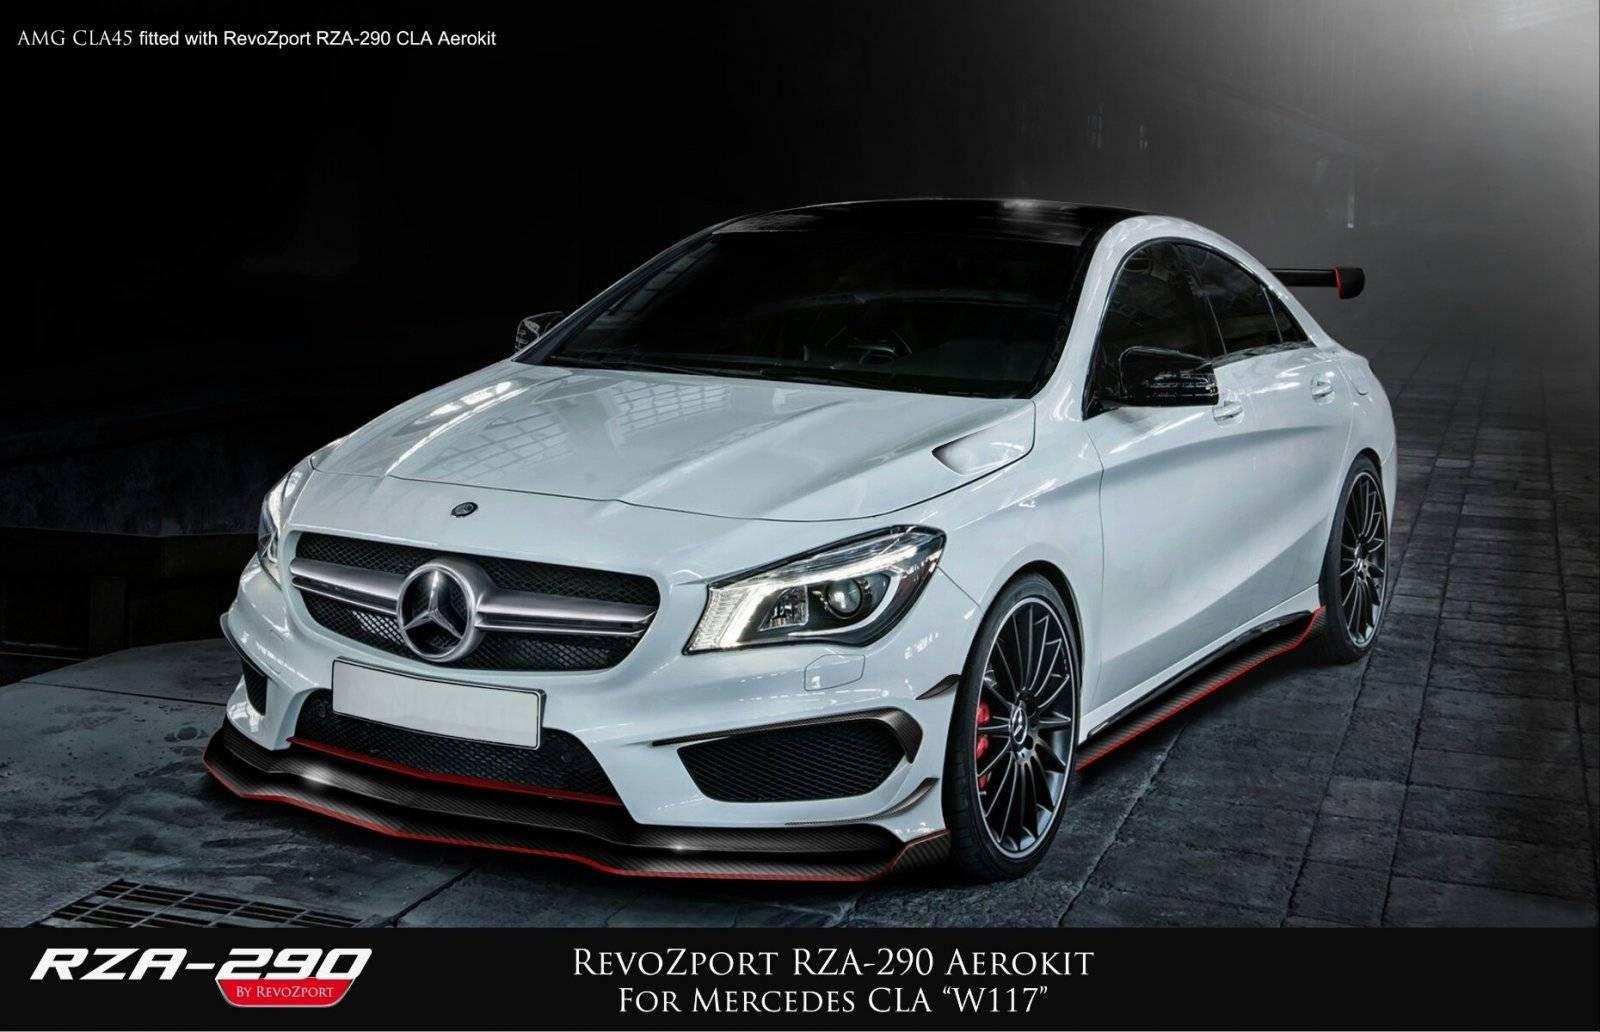 revozport geeft mercedes cla 45 amg vleugels tuning. Black Bedroom Furniture Sets. Home Design Ideas